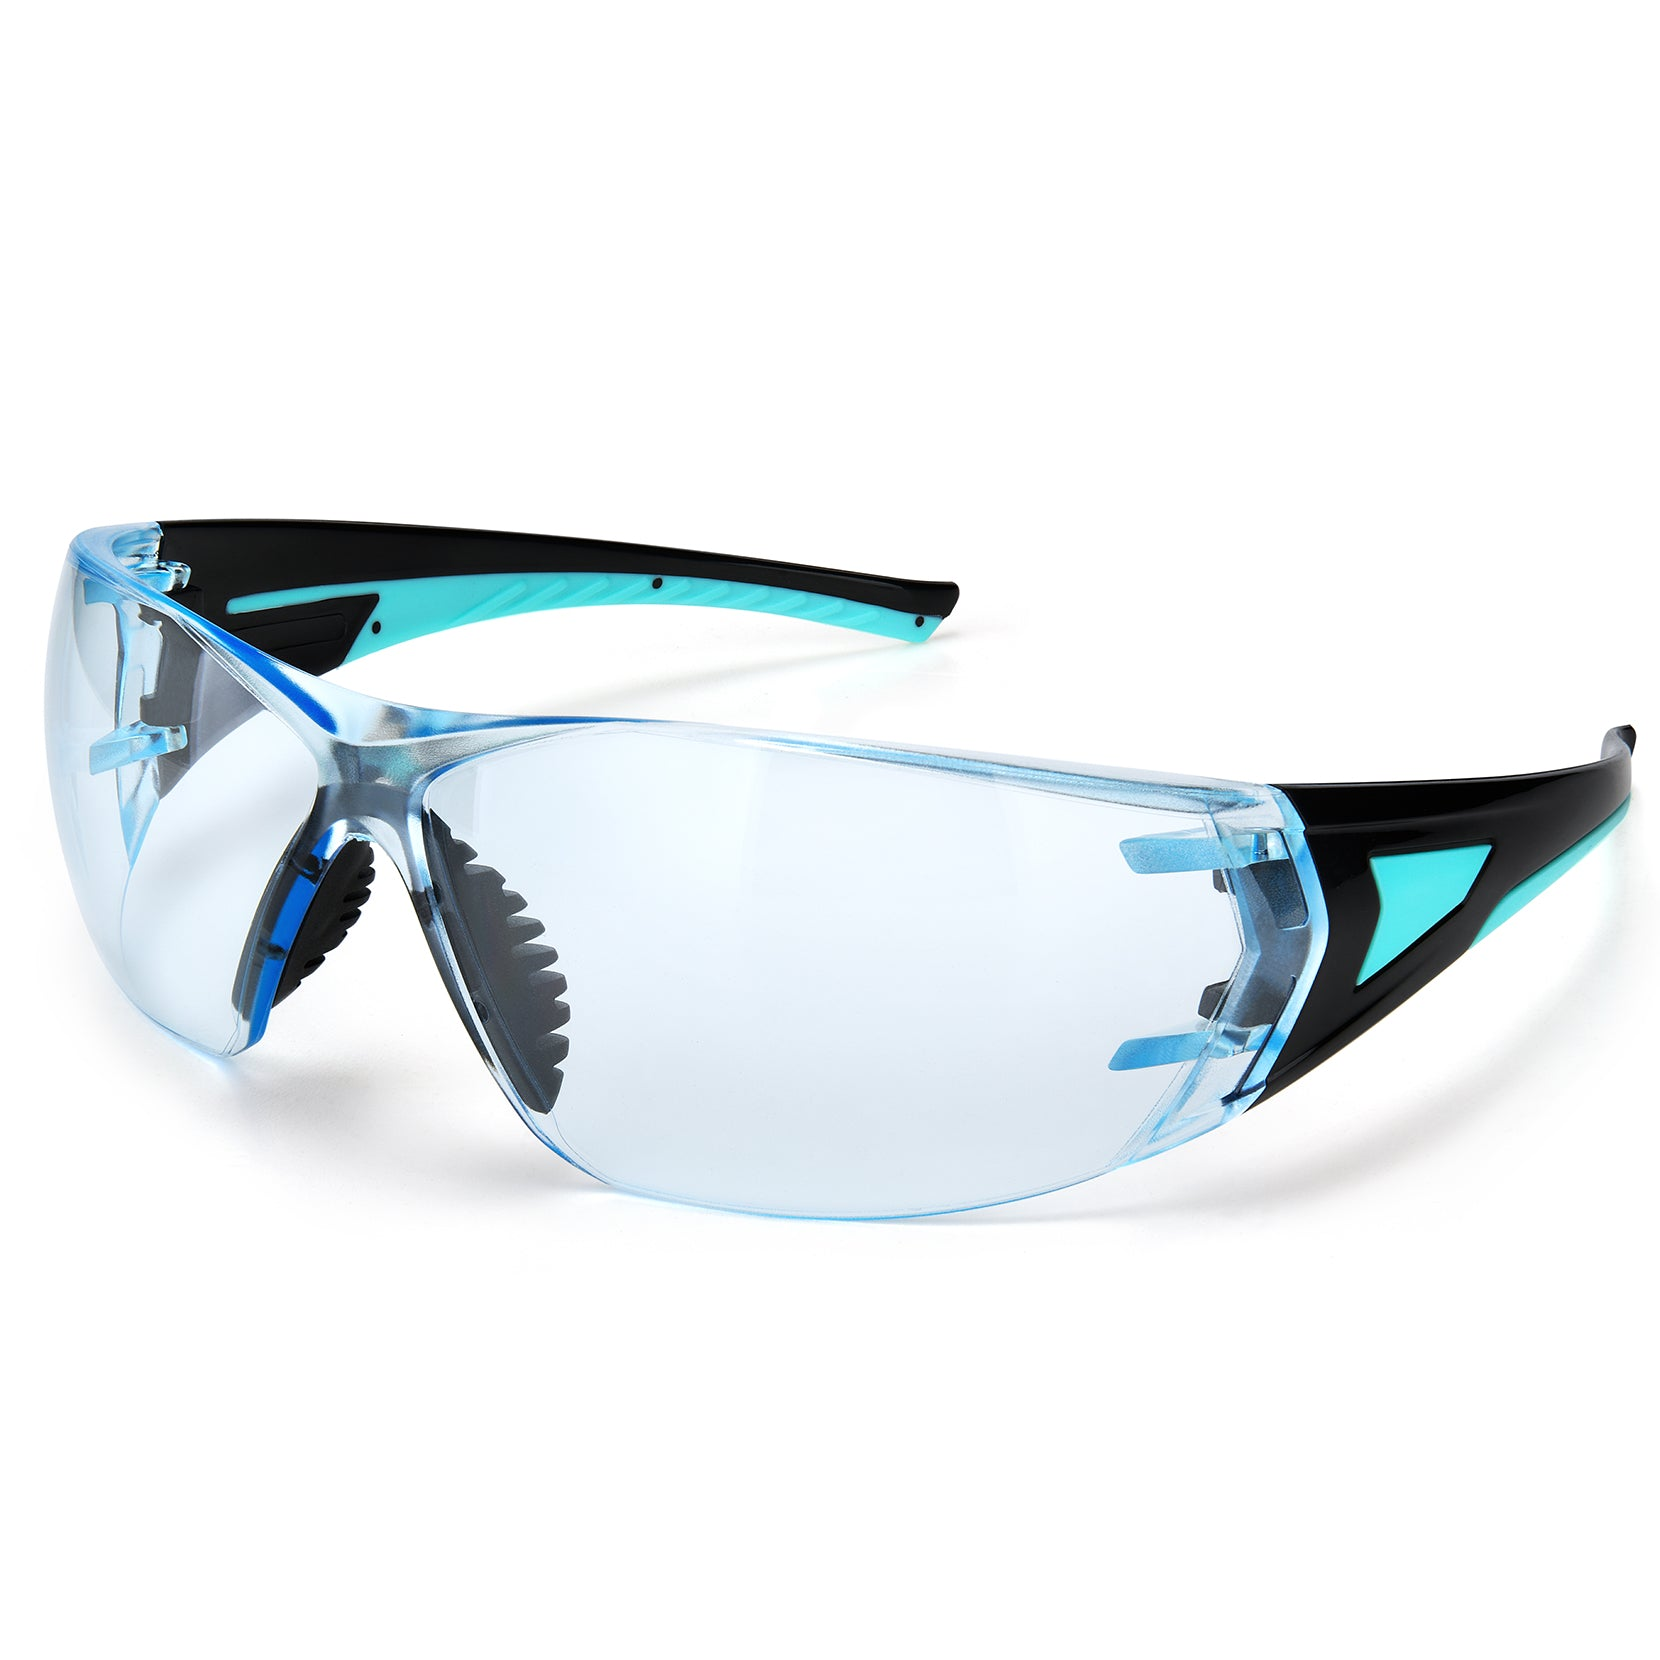 MPOW HP155A Safety Glasses, Anti Scratch and UV Protection